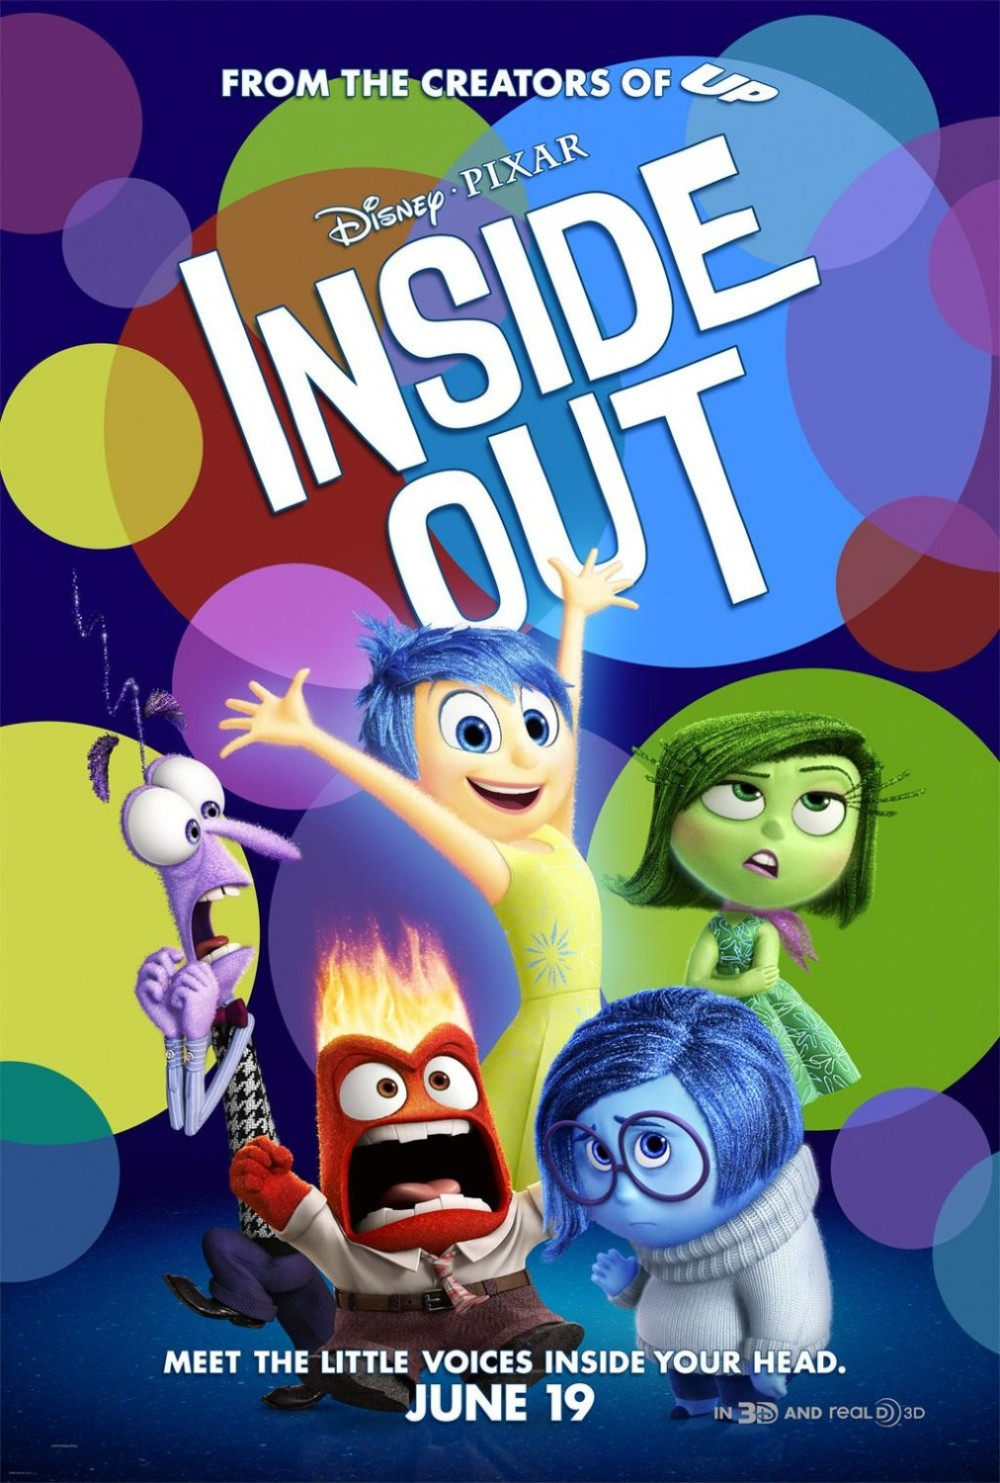 Nieuwste trailer 'Inside Out'!